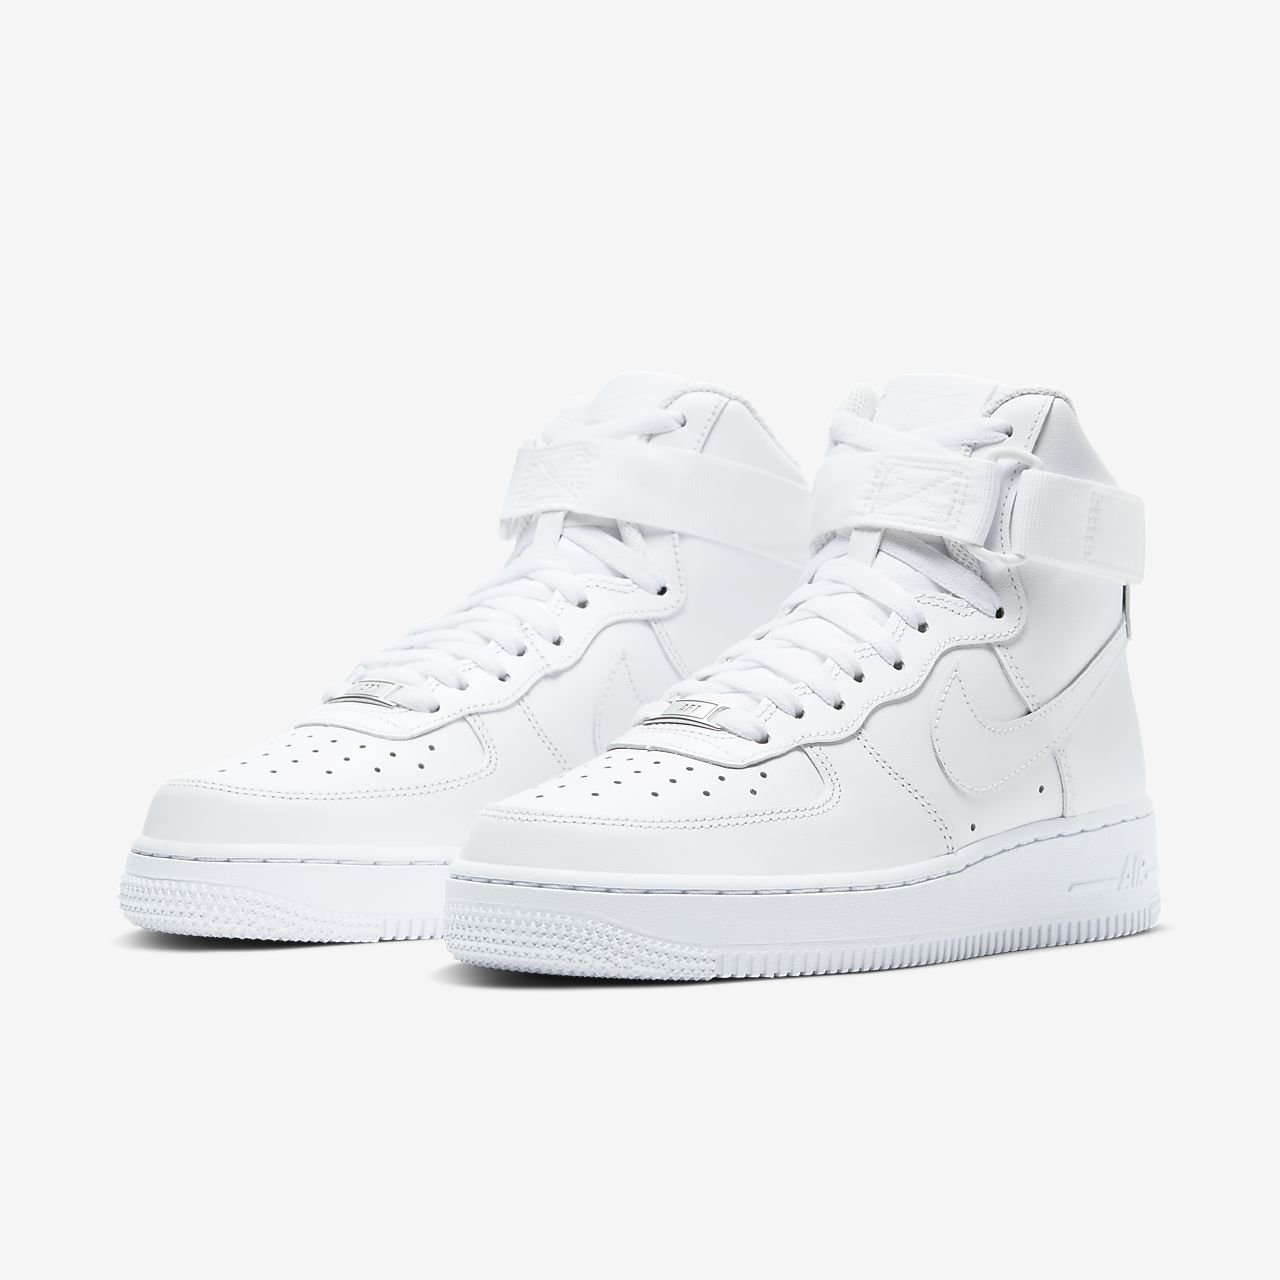 best website 0d31e 9de6f ... Nike Air Force 1 High 08 LE Women s Shoe